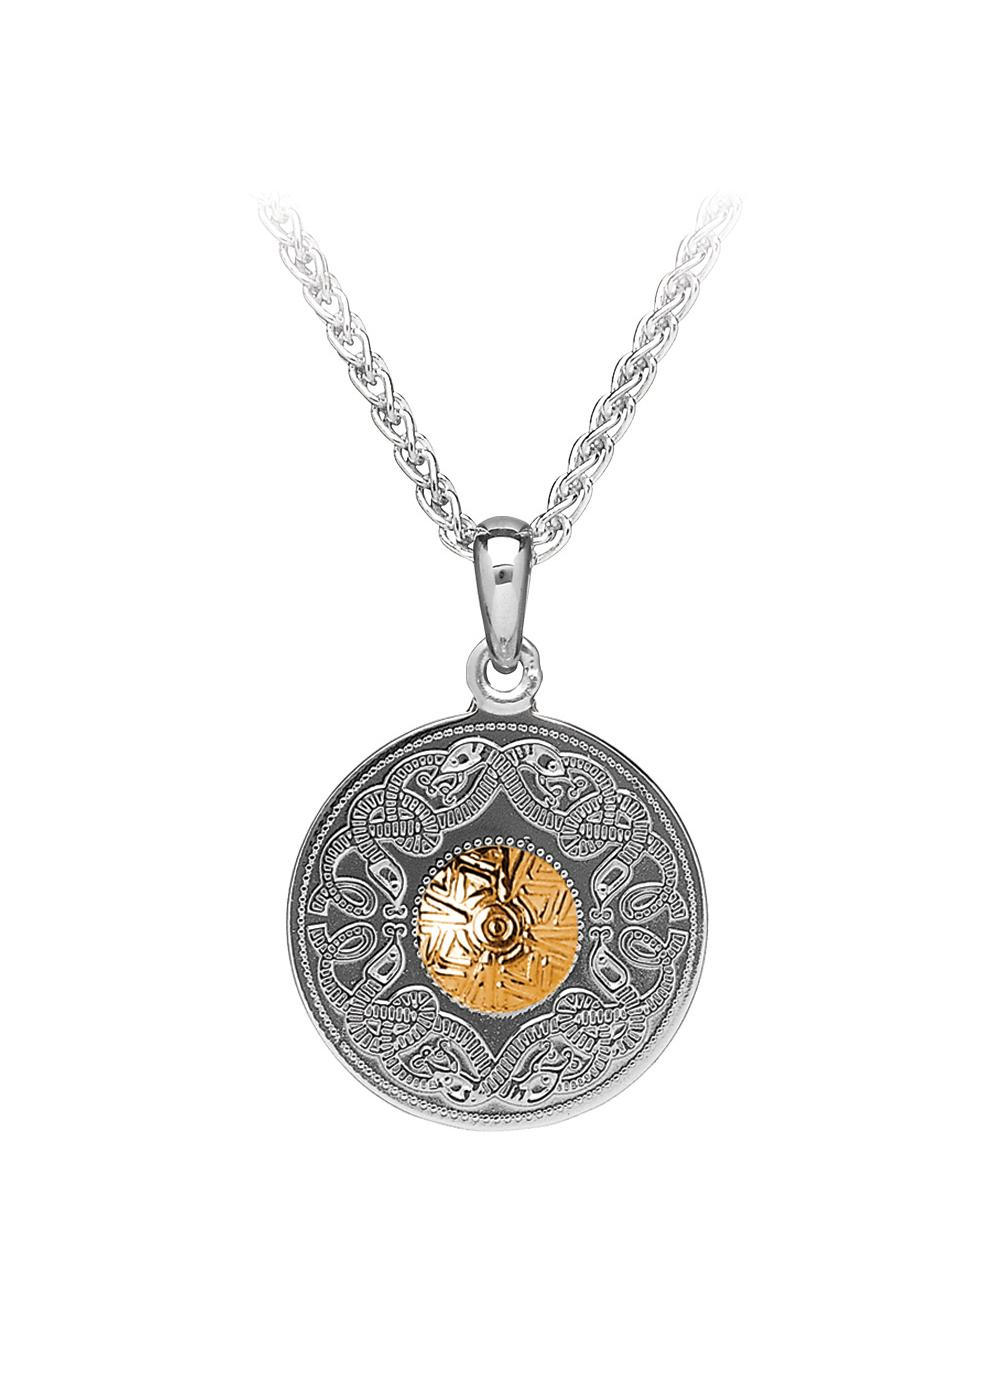 Large Celtic Style Locket with Charms and Beaded Chain